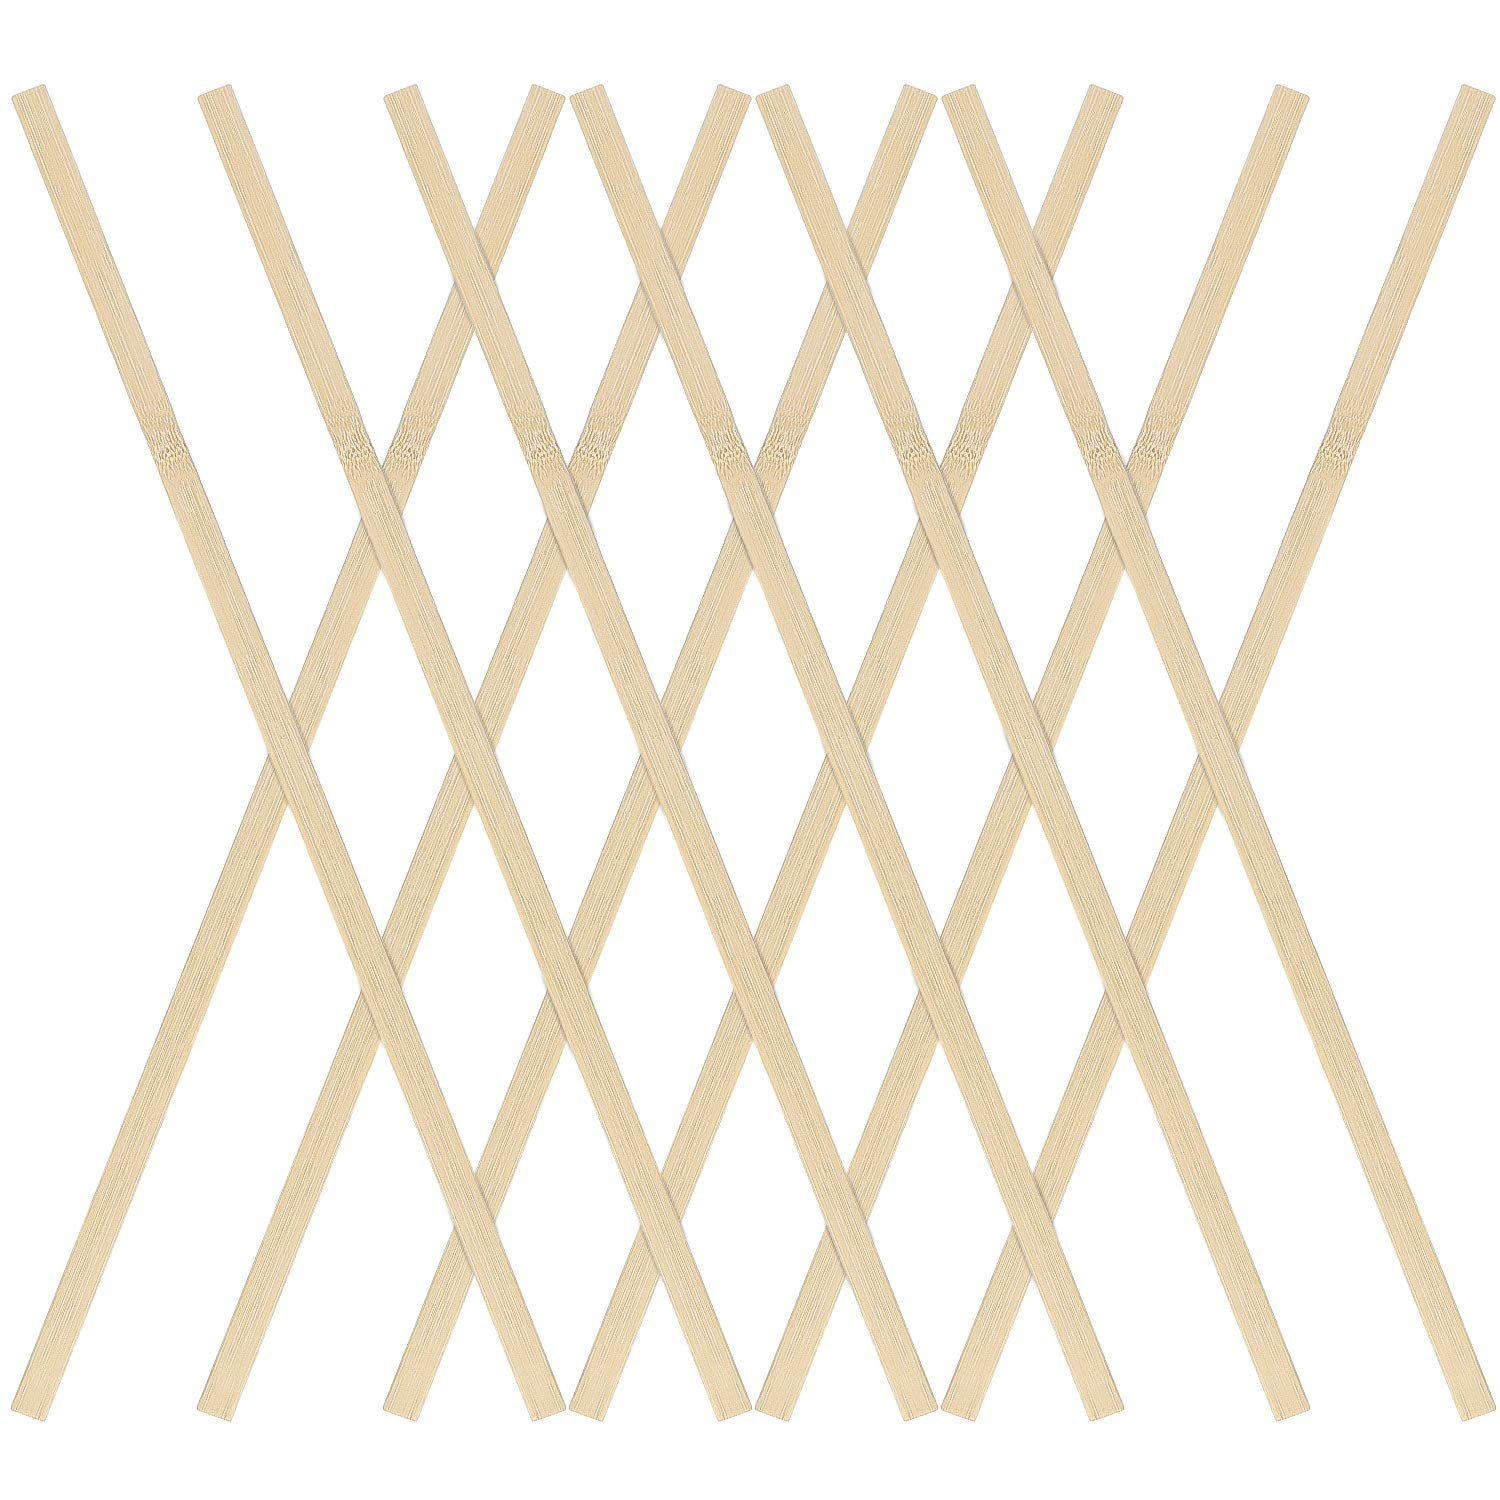 Strong Natural Bamboo Sticks 50PCS Favordrory 15.7 inches Wood Craft Sticks Natural Bamboo Sticks Extra Long Sticks Can be Curved